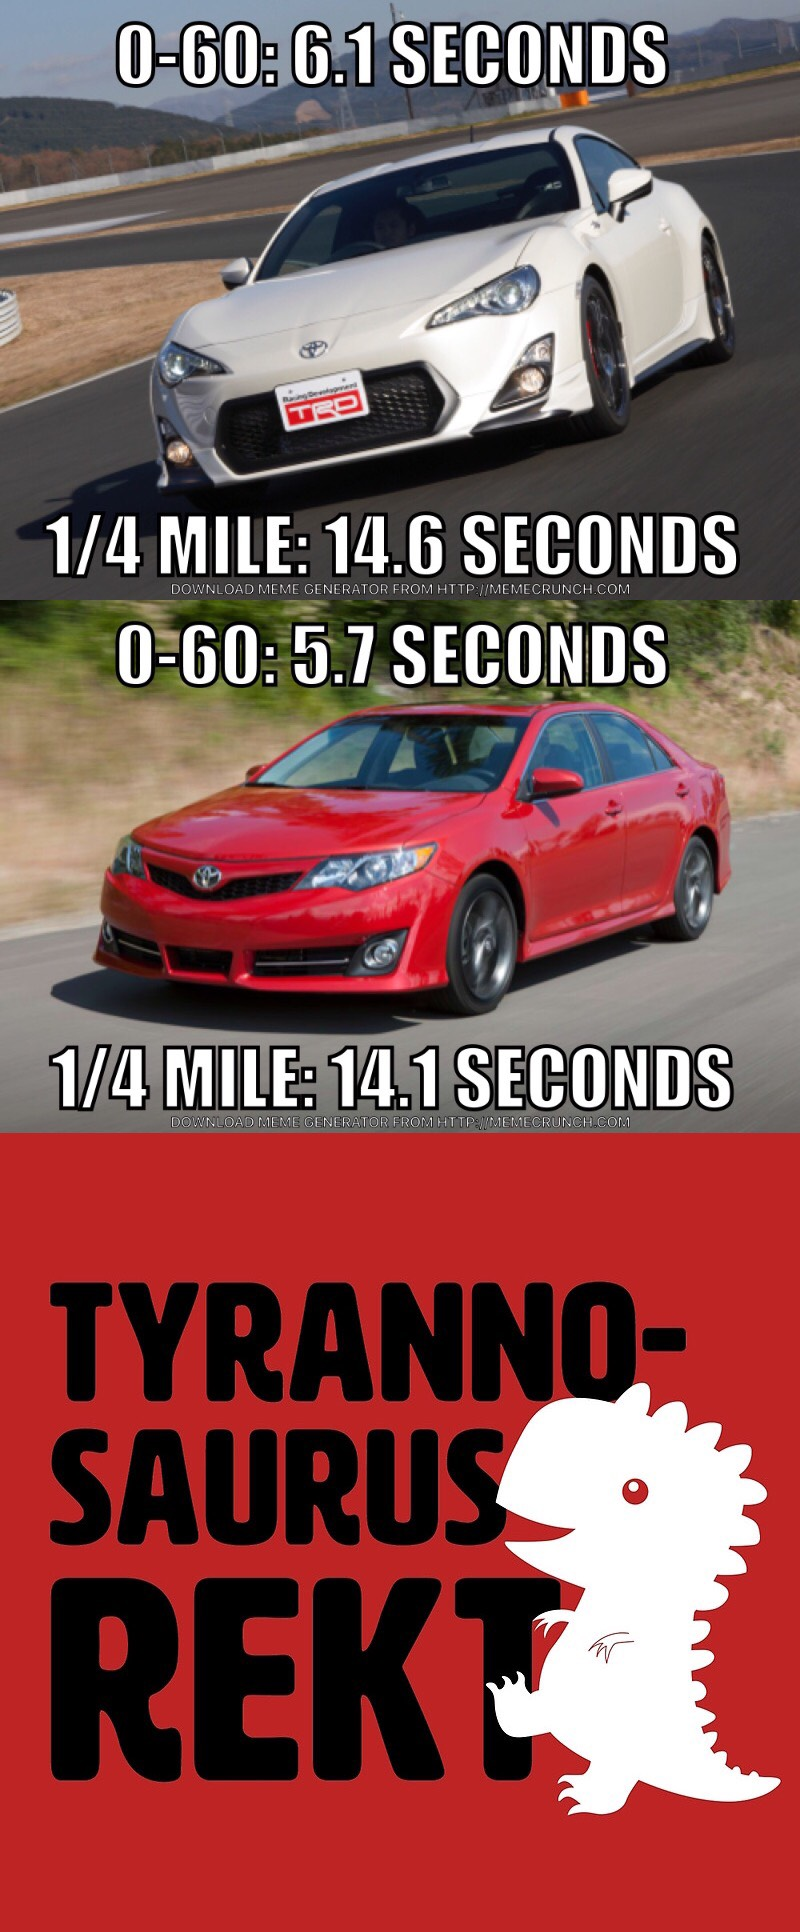 49113628a9be94b97c39006b10060fec that monent when you realize a toyota camry is faster than a